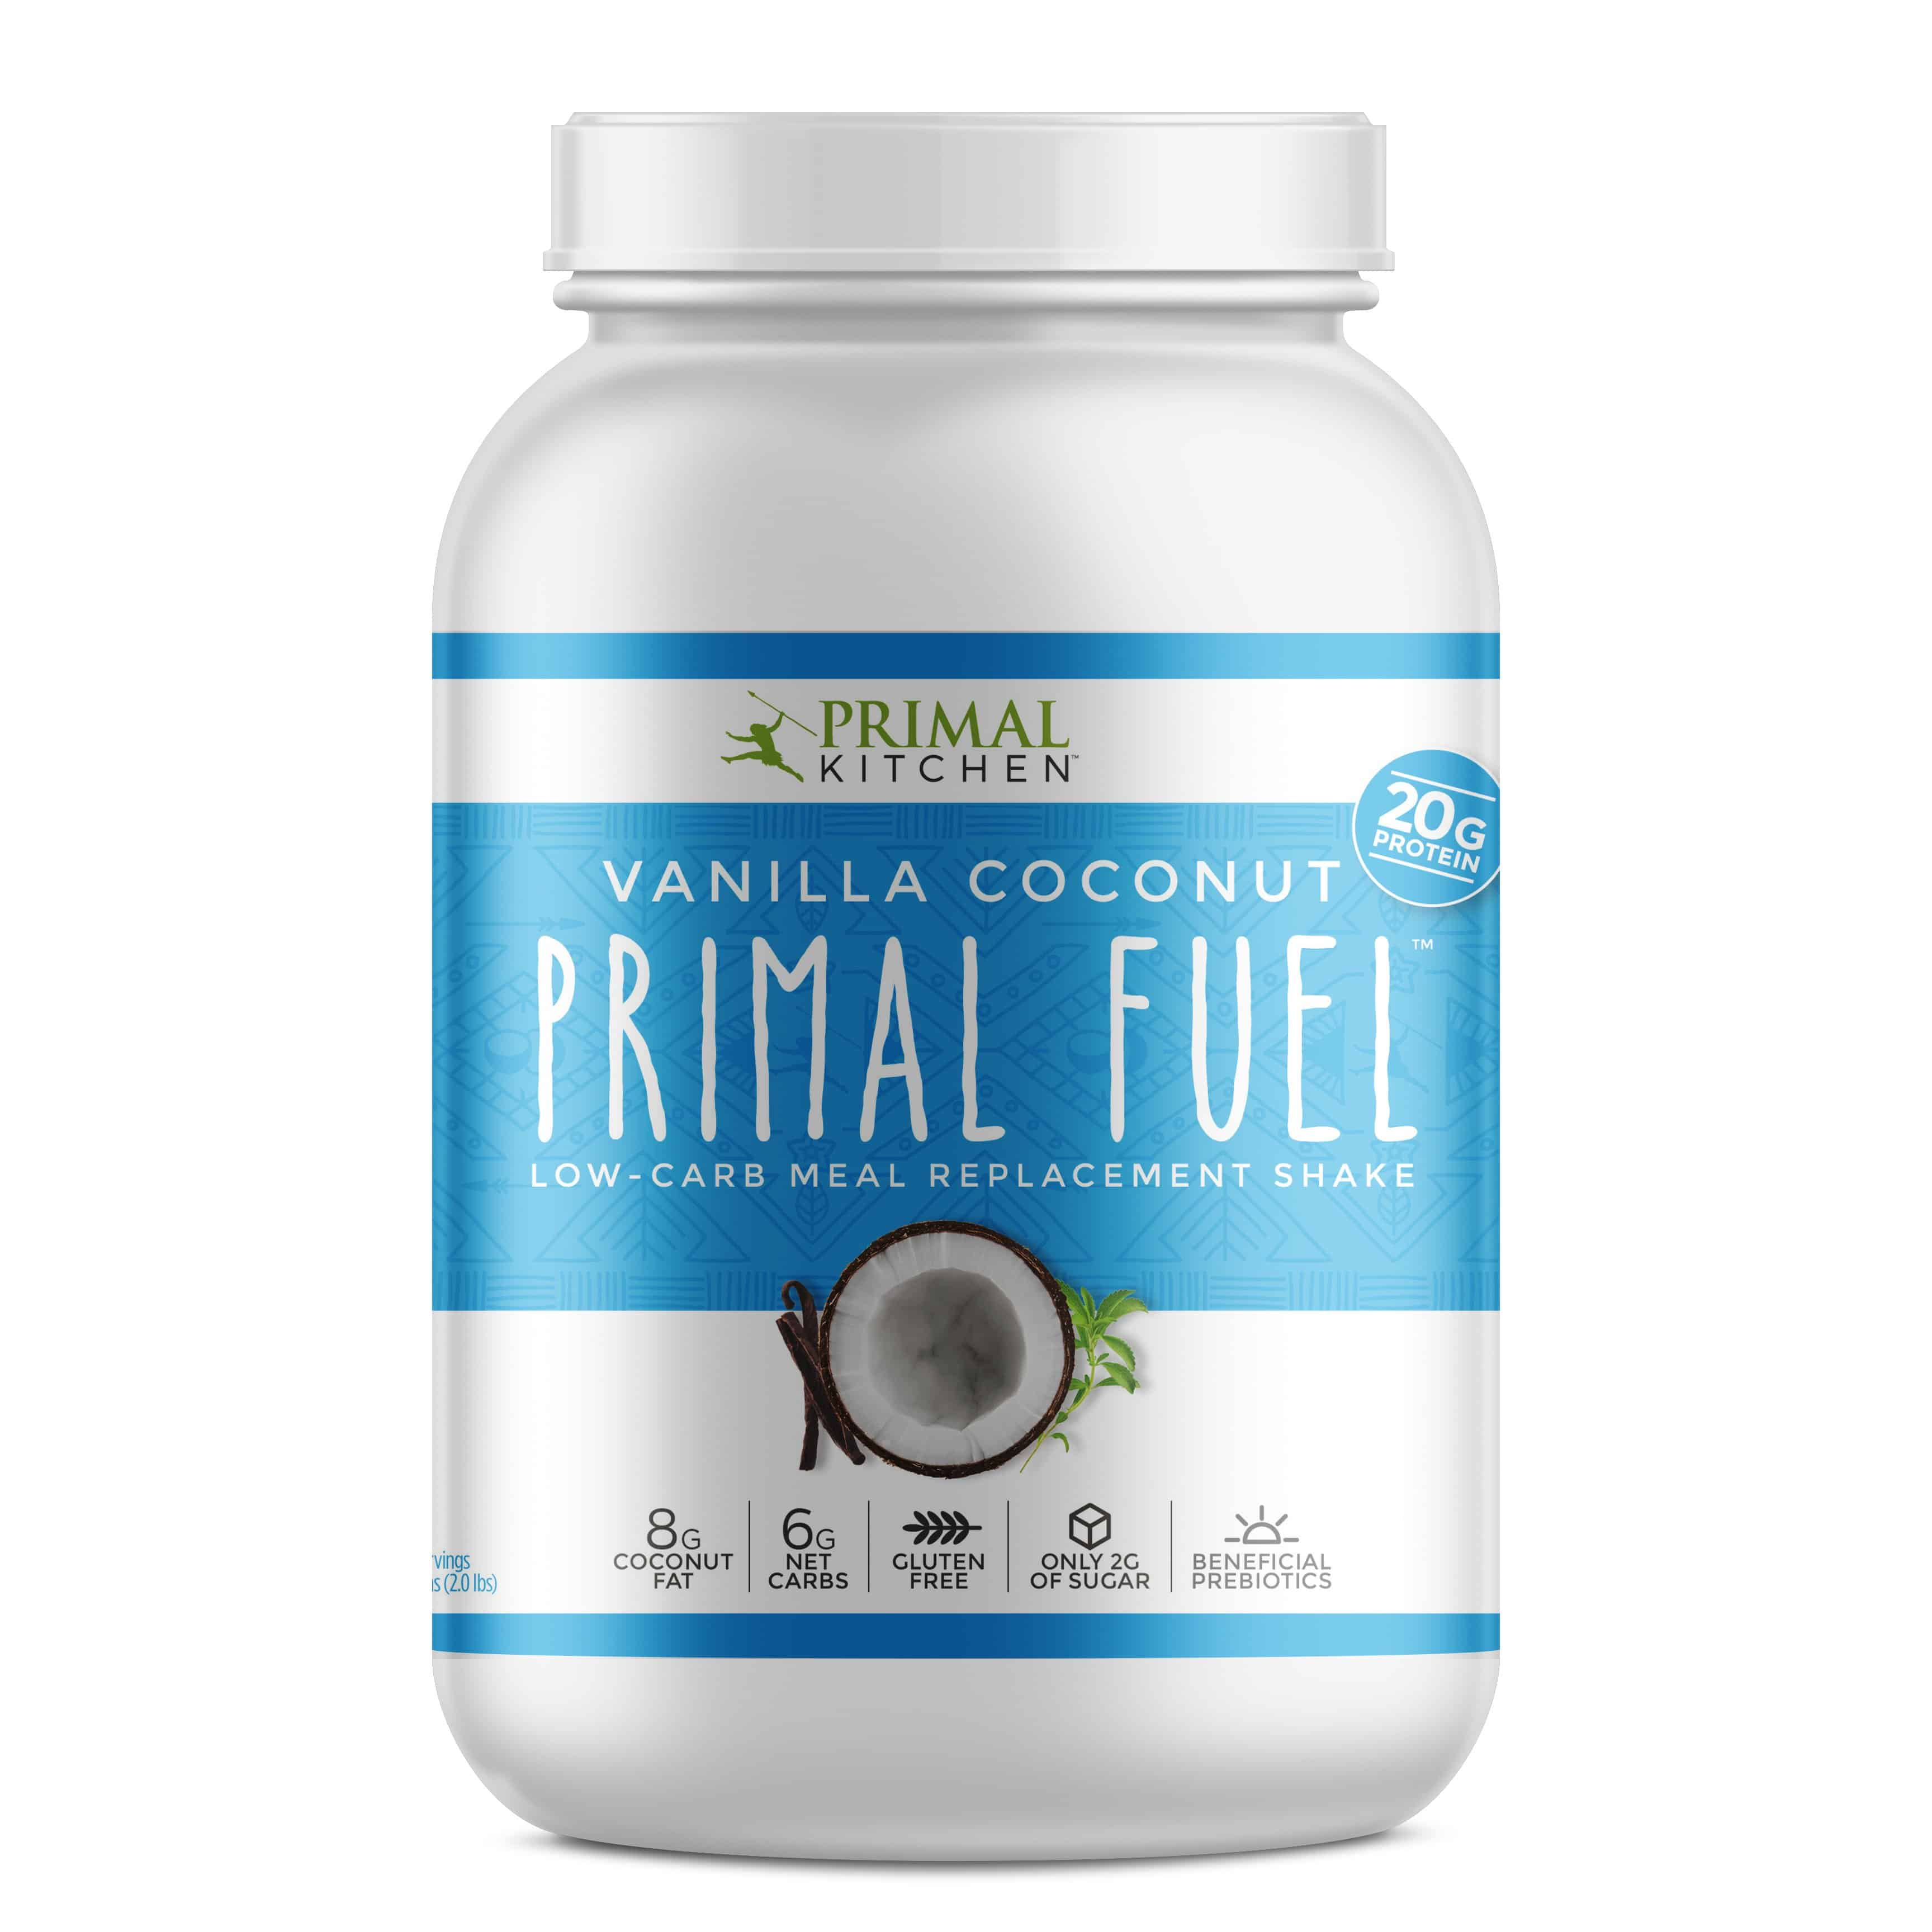 Primal kitchen protein powder review is it any good alt protein primal kitchen protein powder review is it any good malvernweather Images